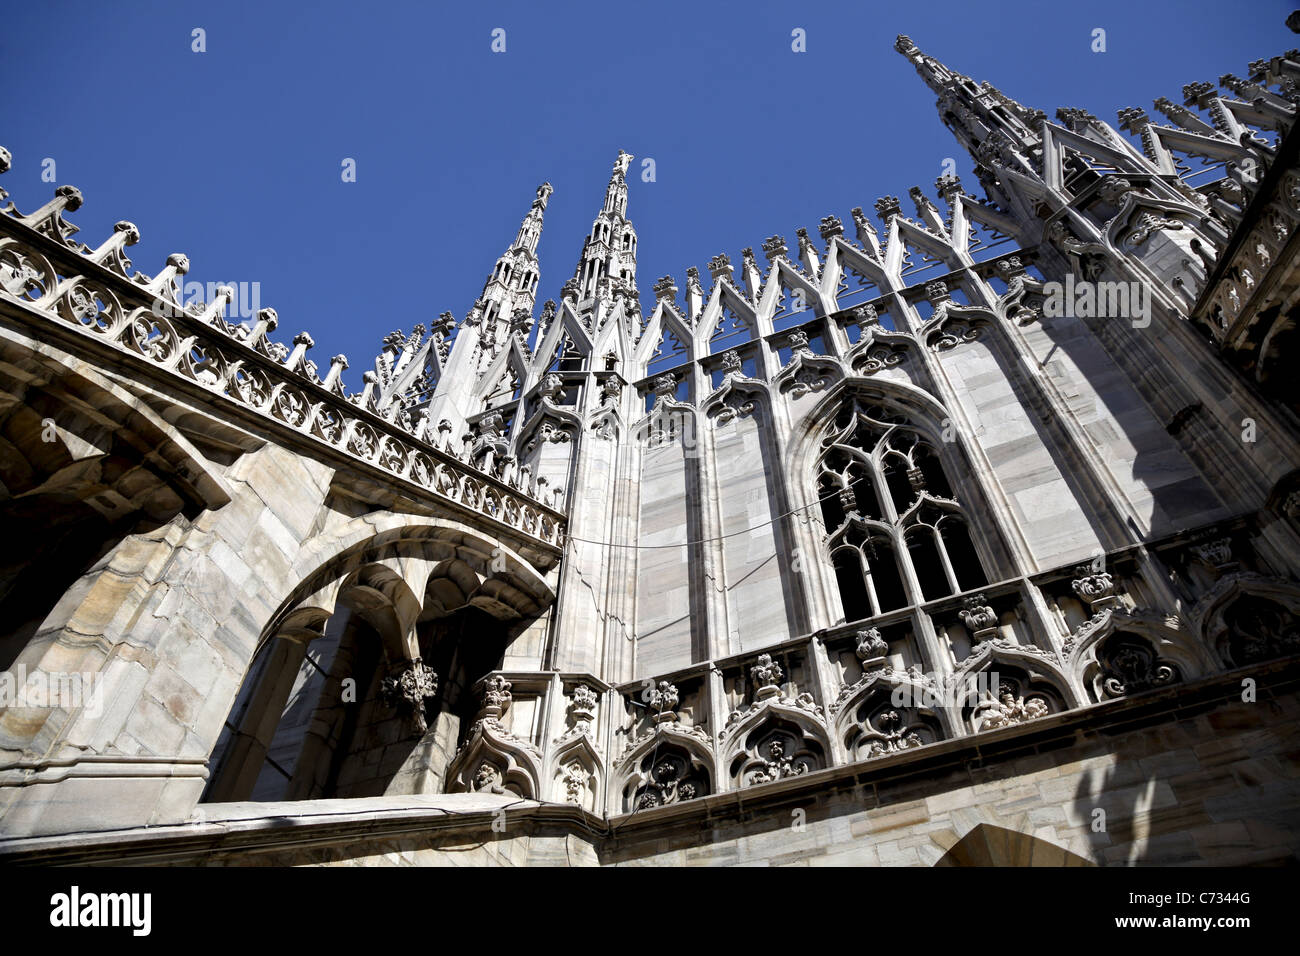 A section of the roof of Milan Cathedral (Duomo di Milano) - Stock Image